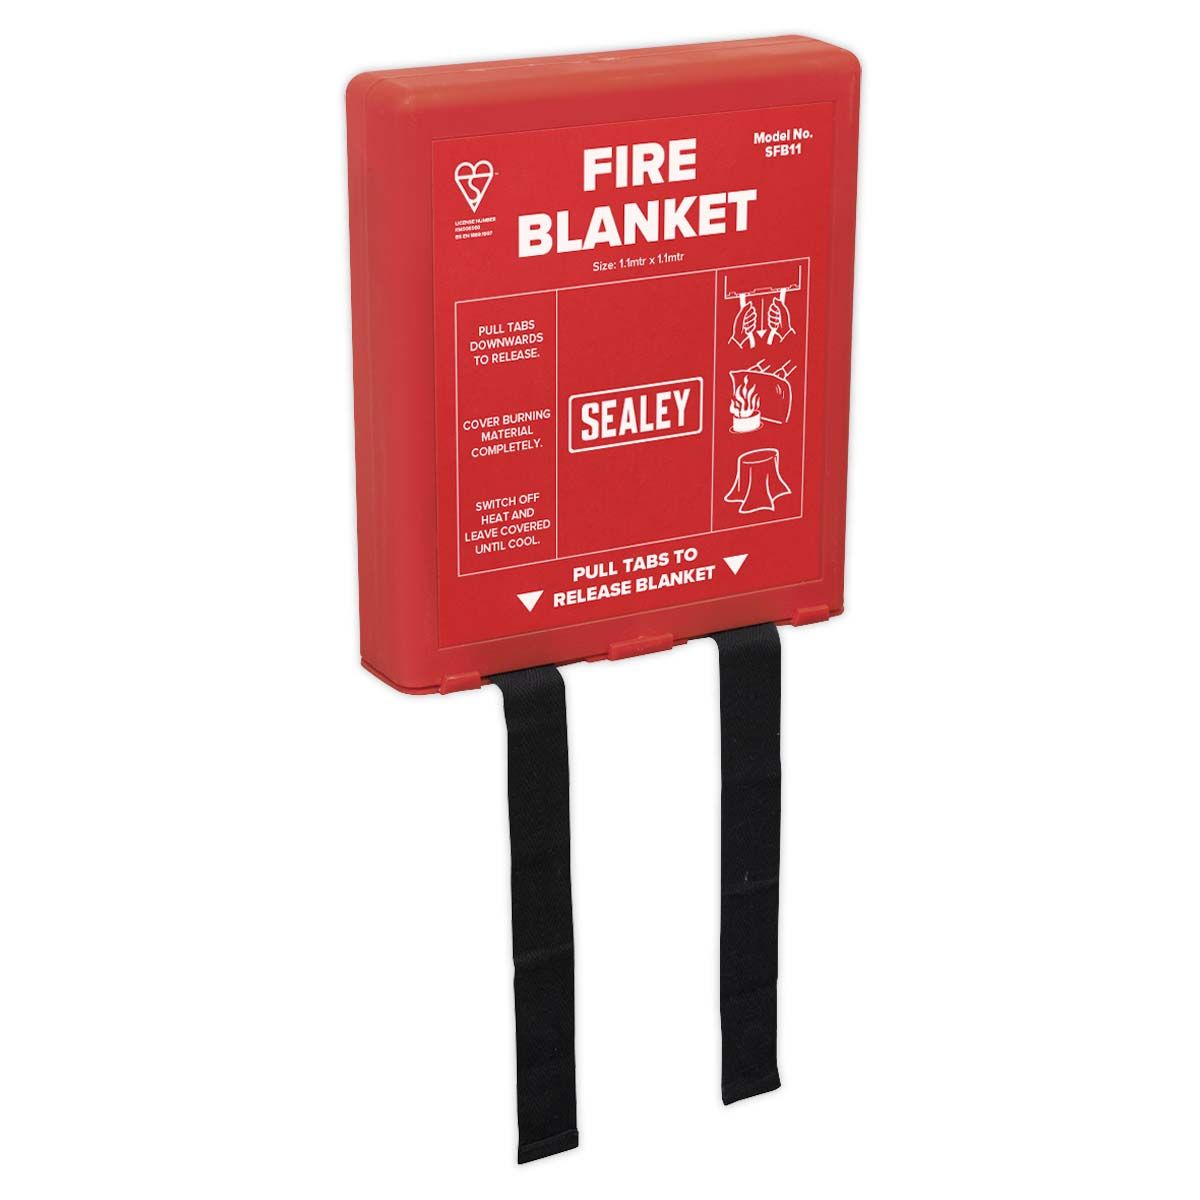 Sealey Fire Blanket 1.1 x 1.1m